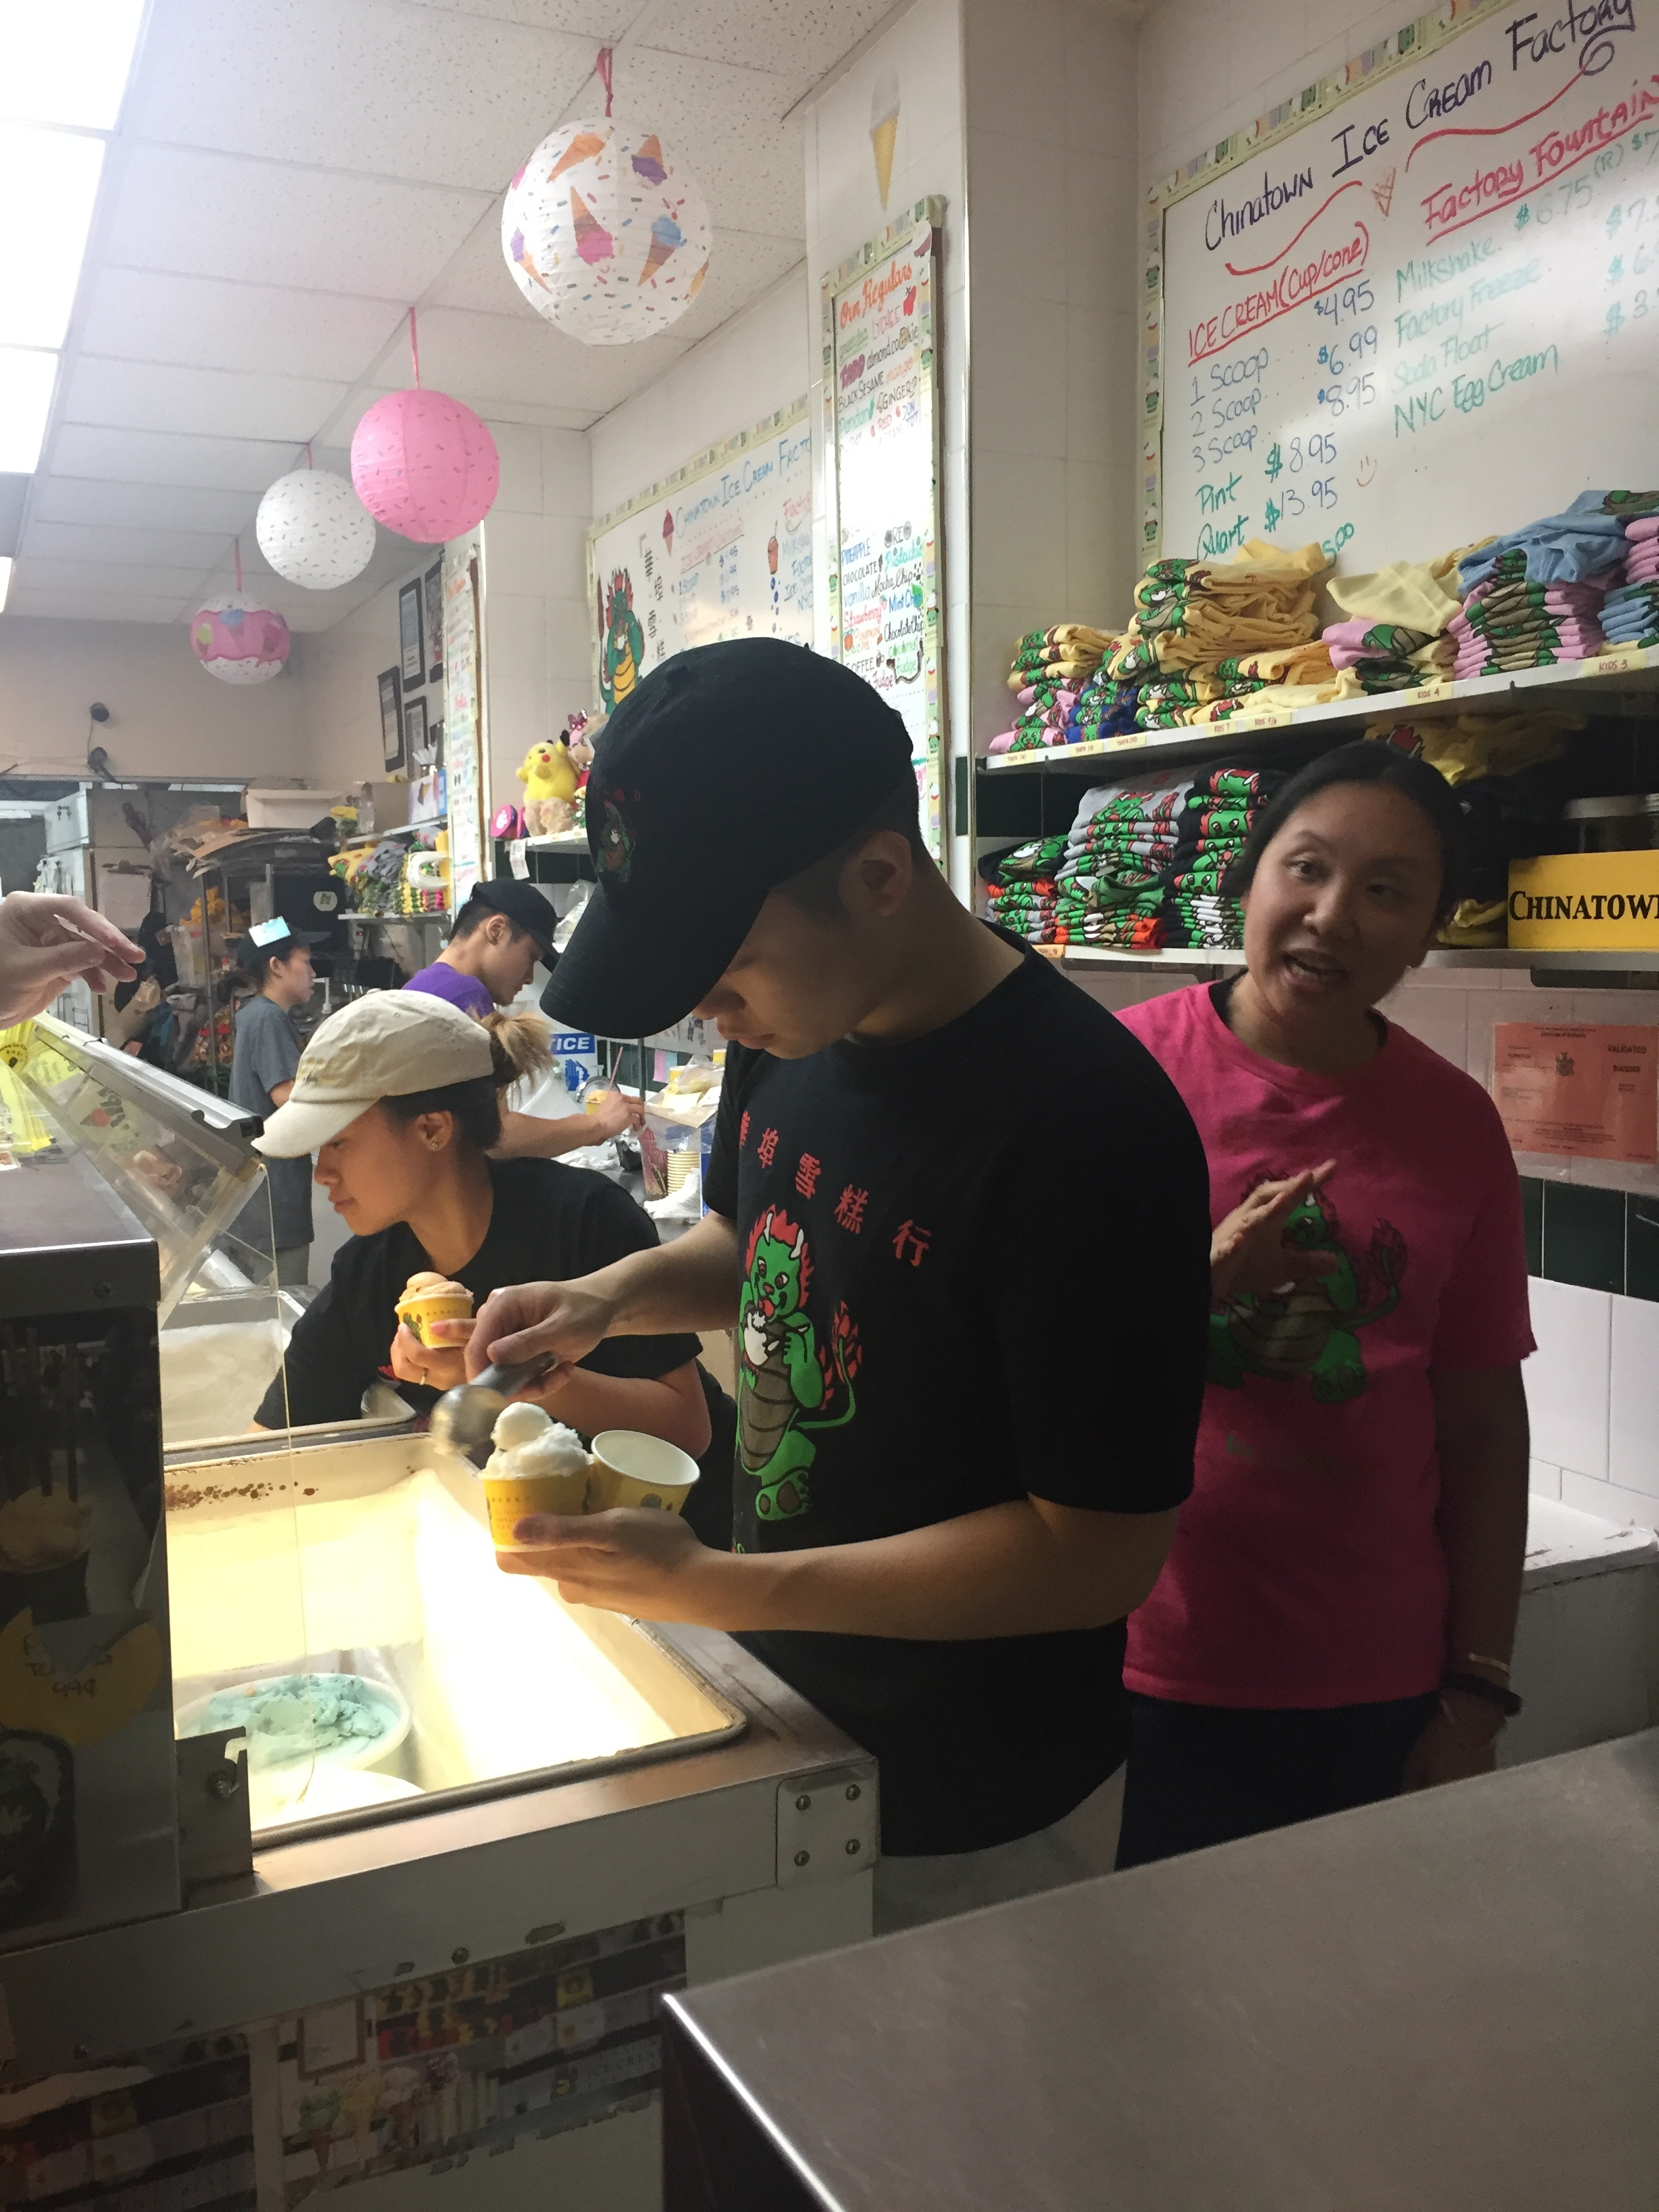 The  helpful employees at The Original Chinatown Ice Cream Factory working hard to help us find the perfect flavors for our picky palettes.